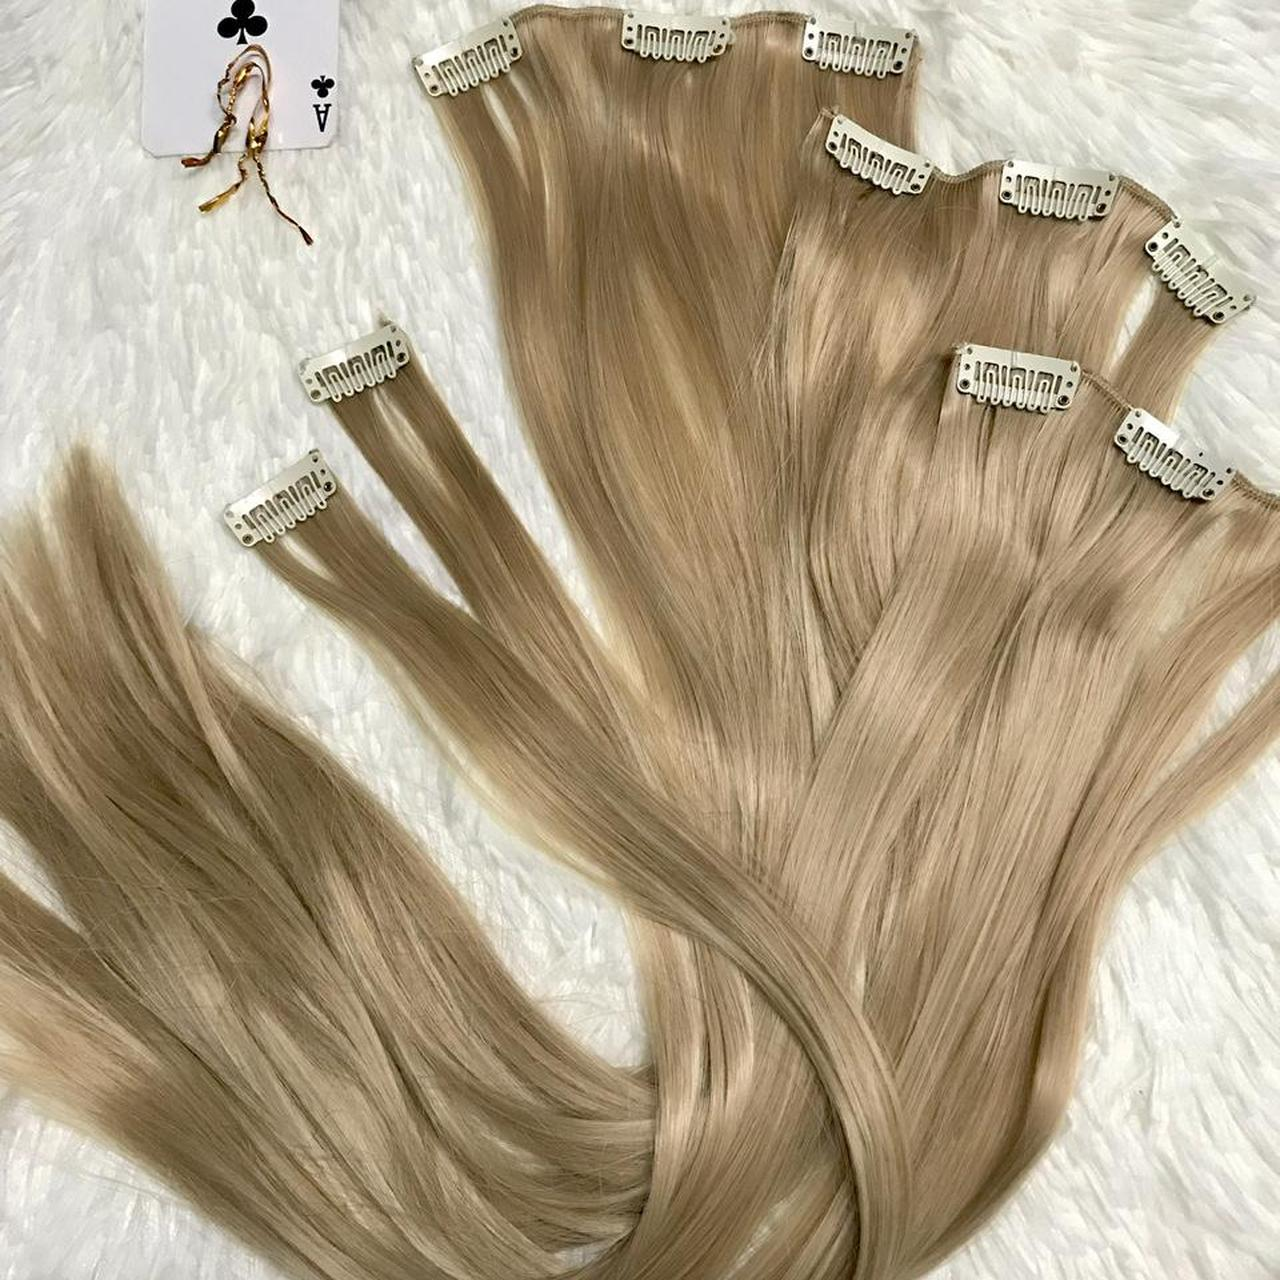 """Product Image 1 - 22"""" 16 clips hair extension"""